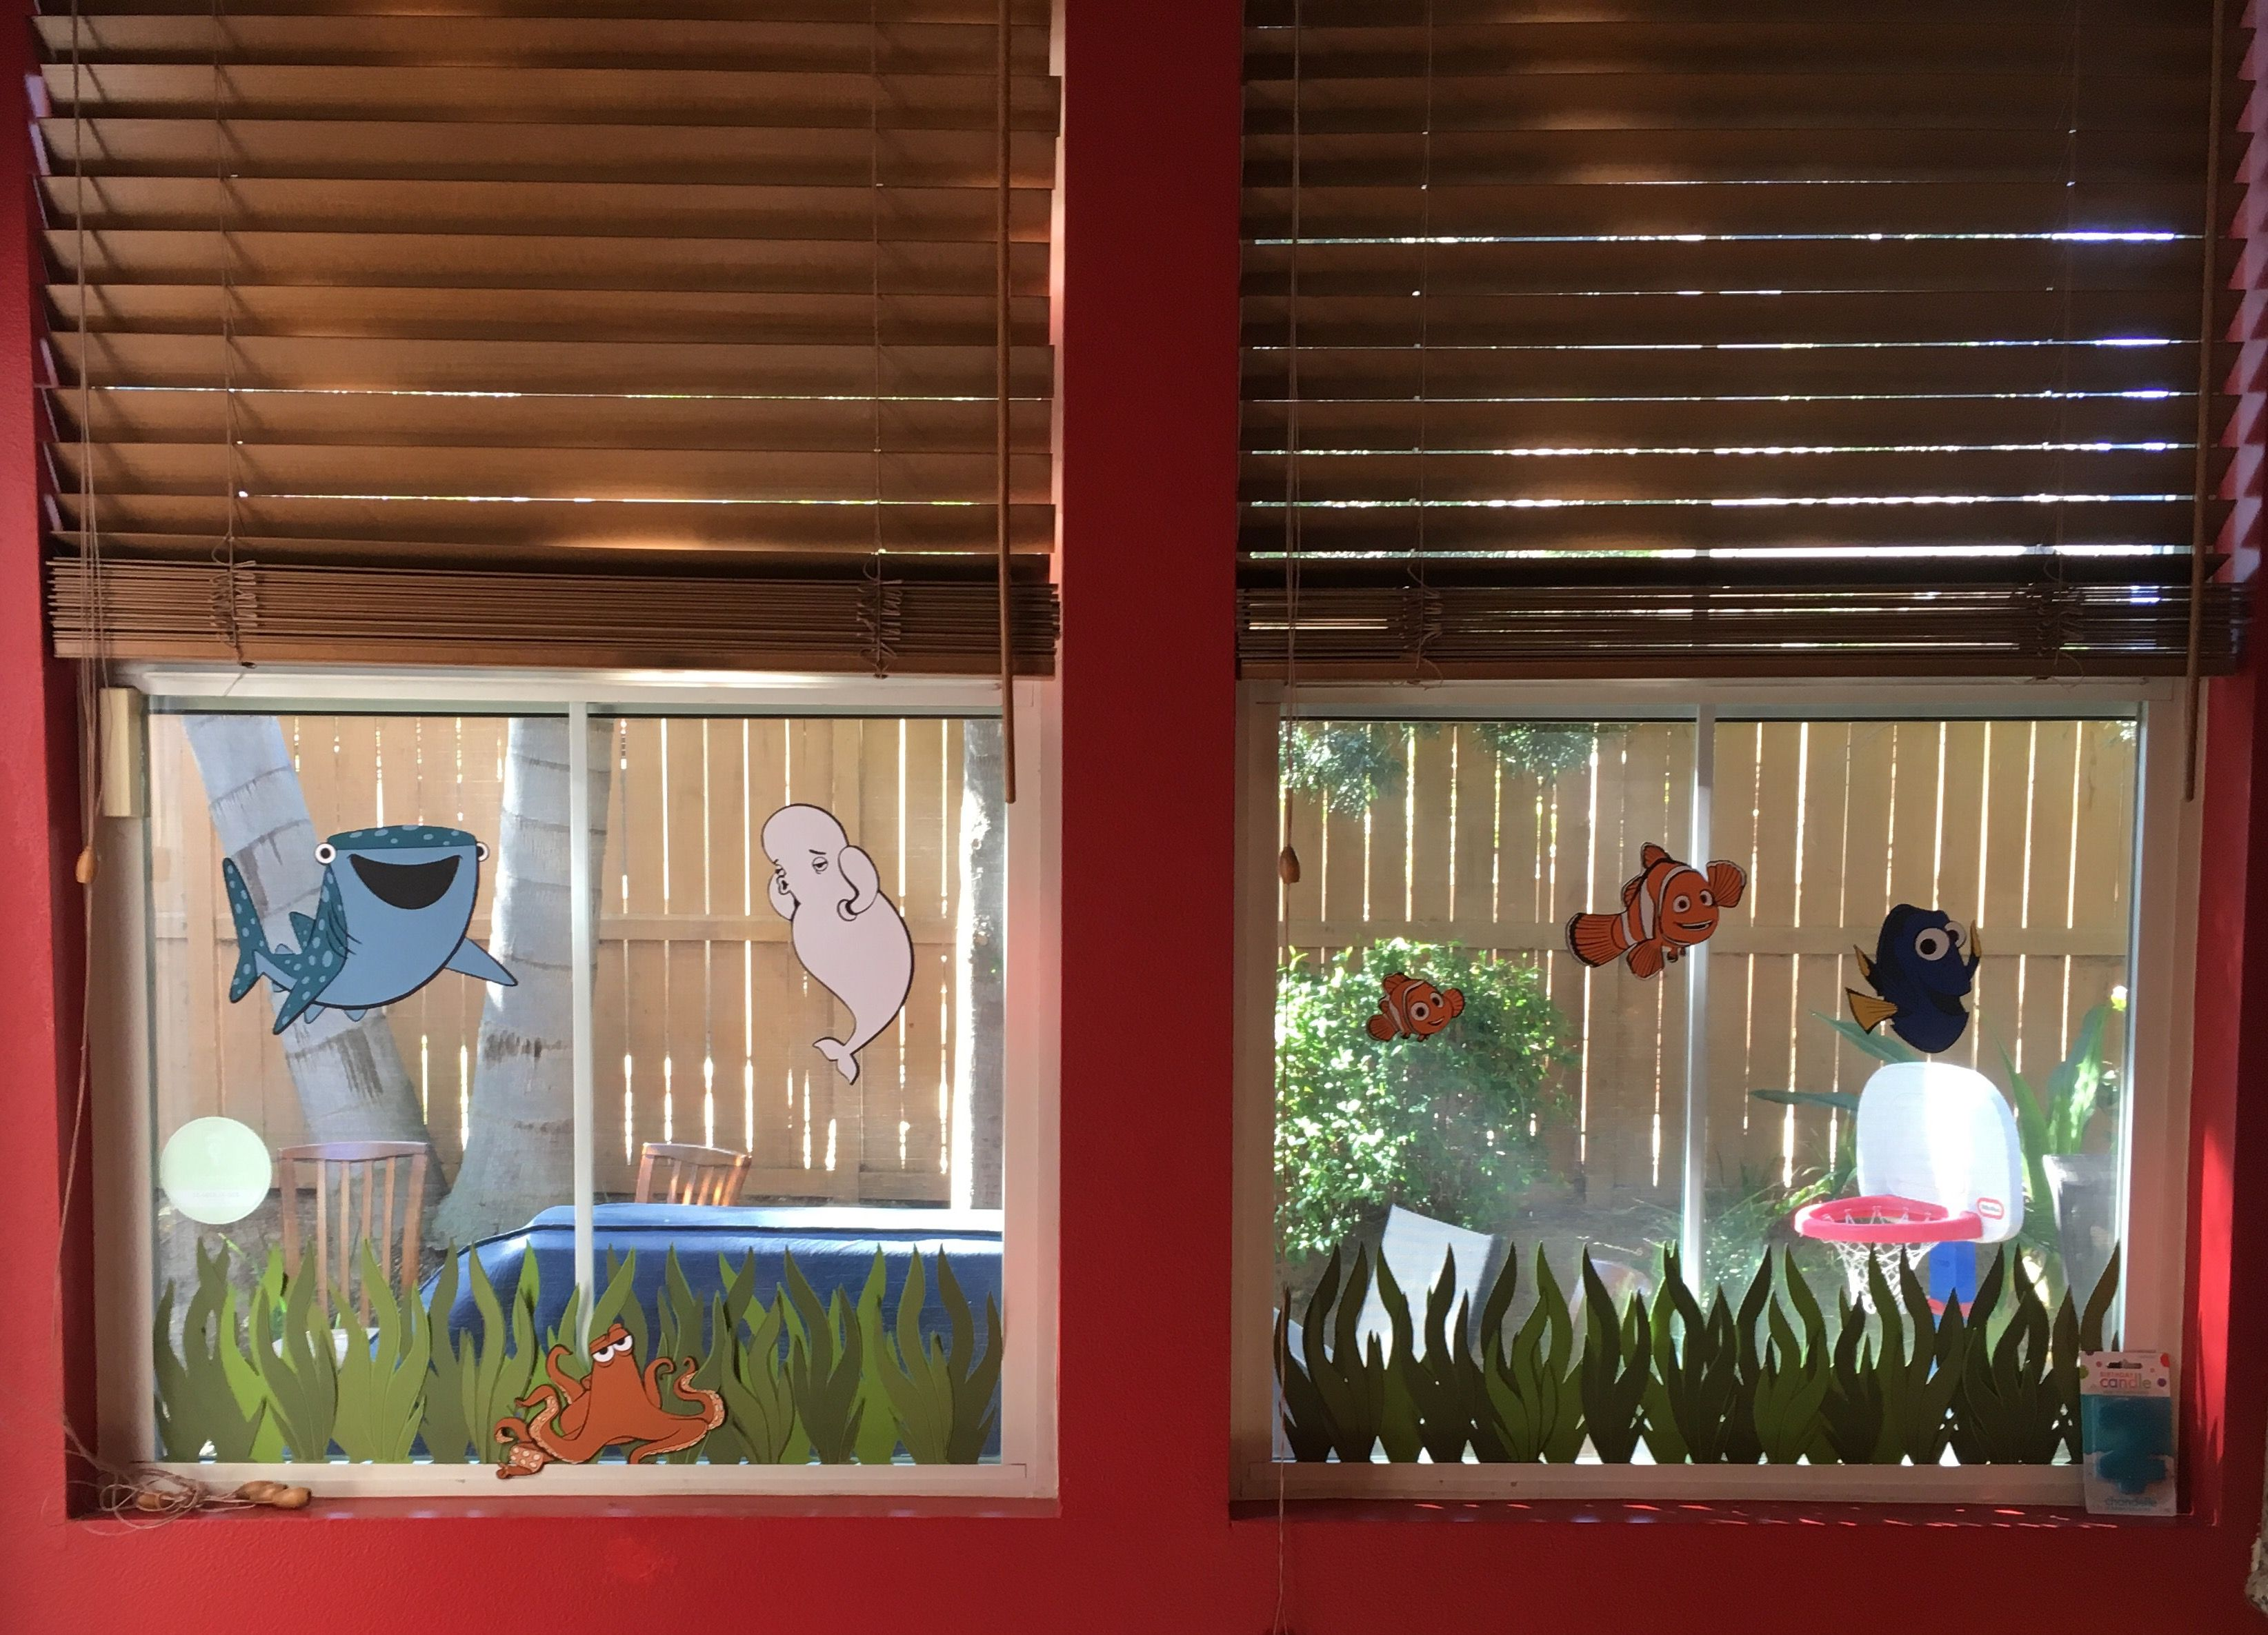 Dory window decorations